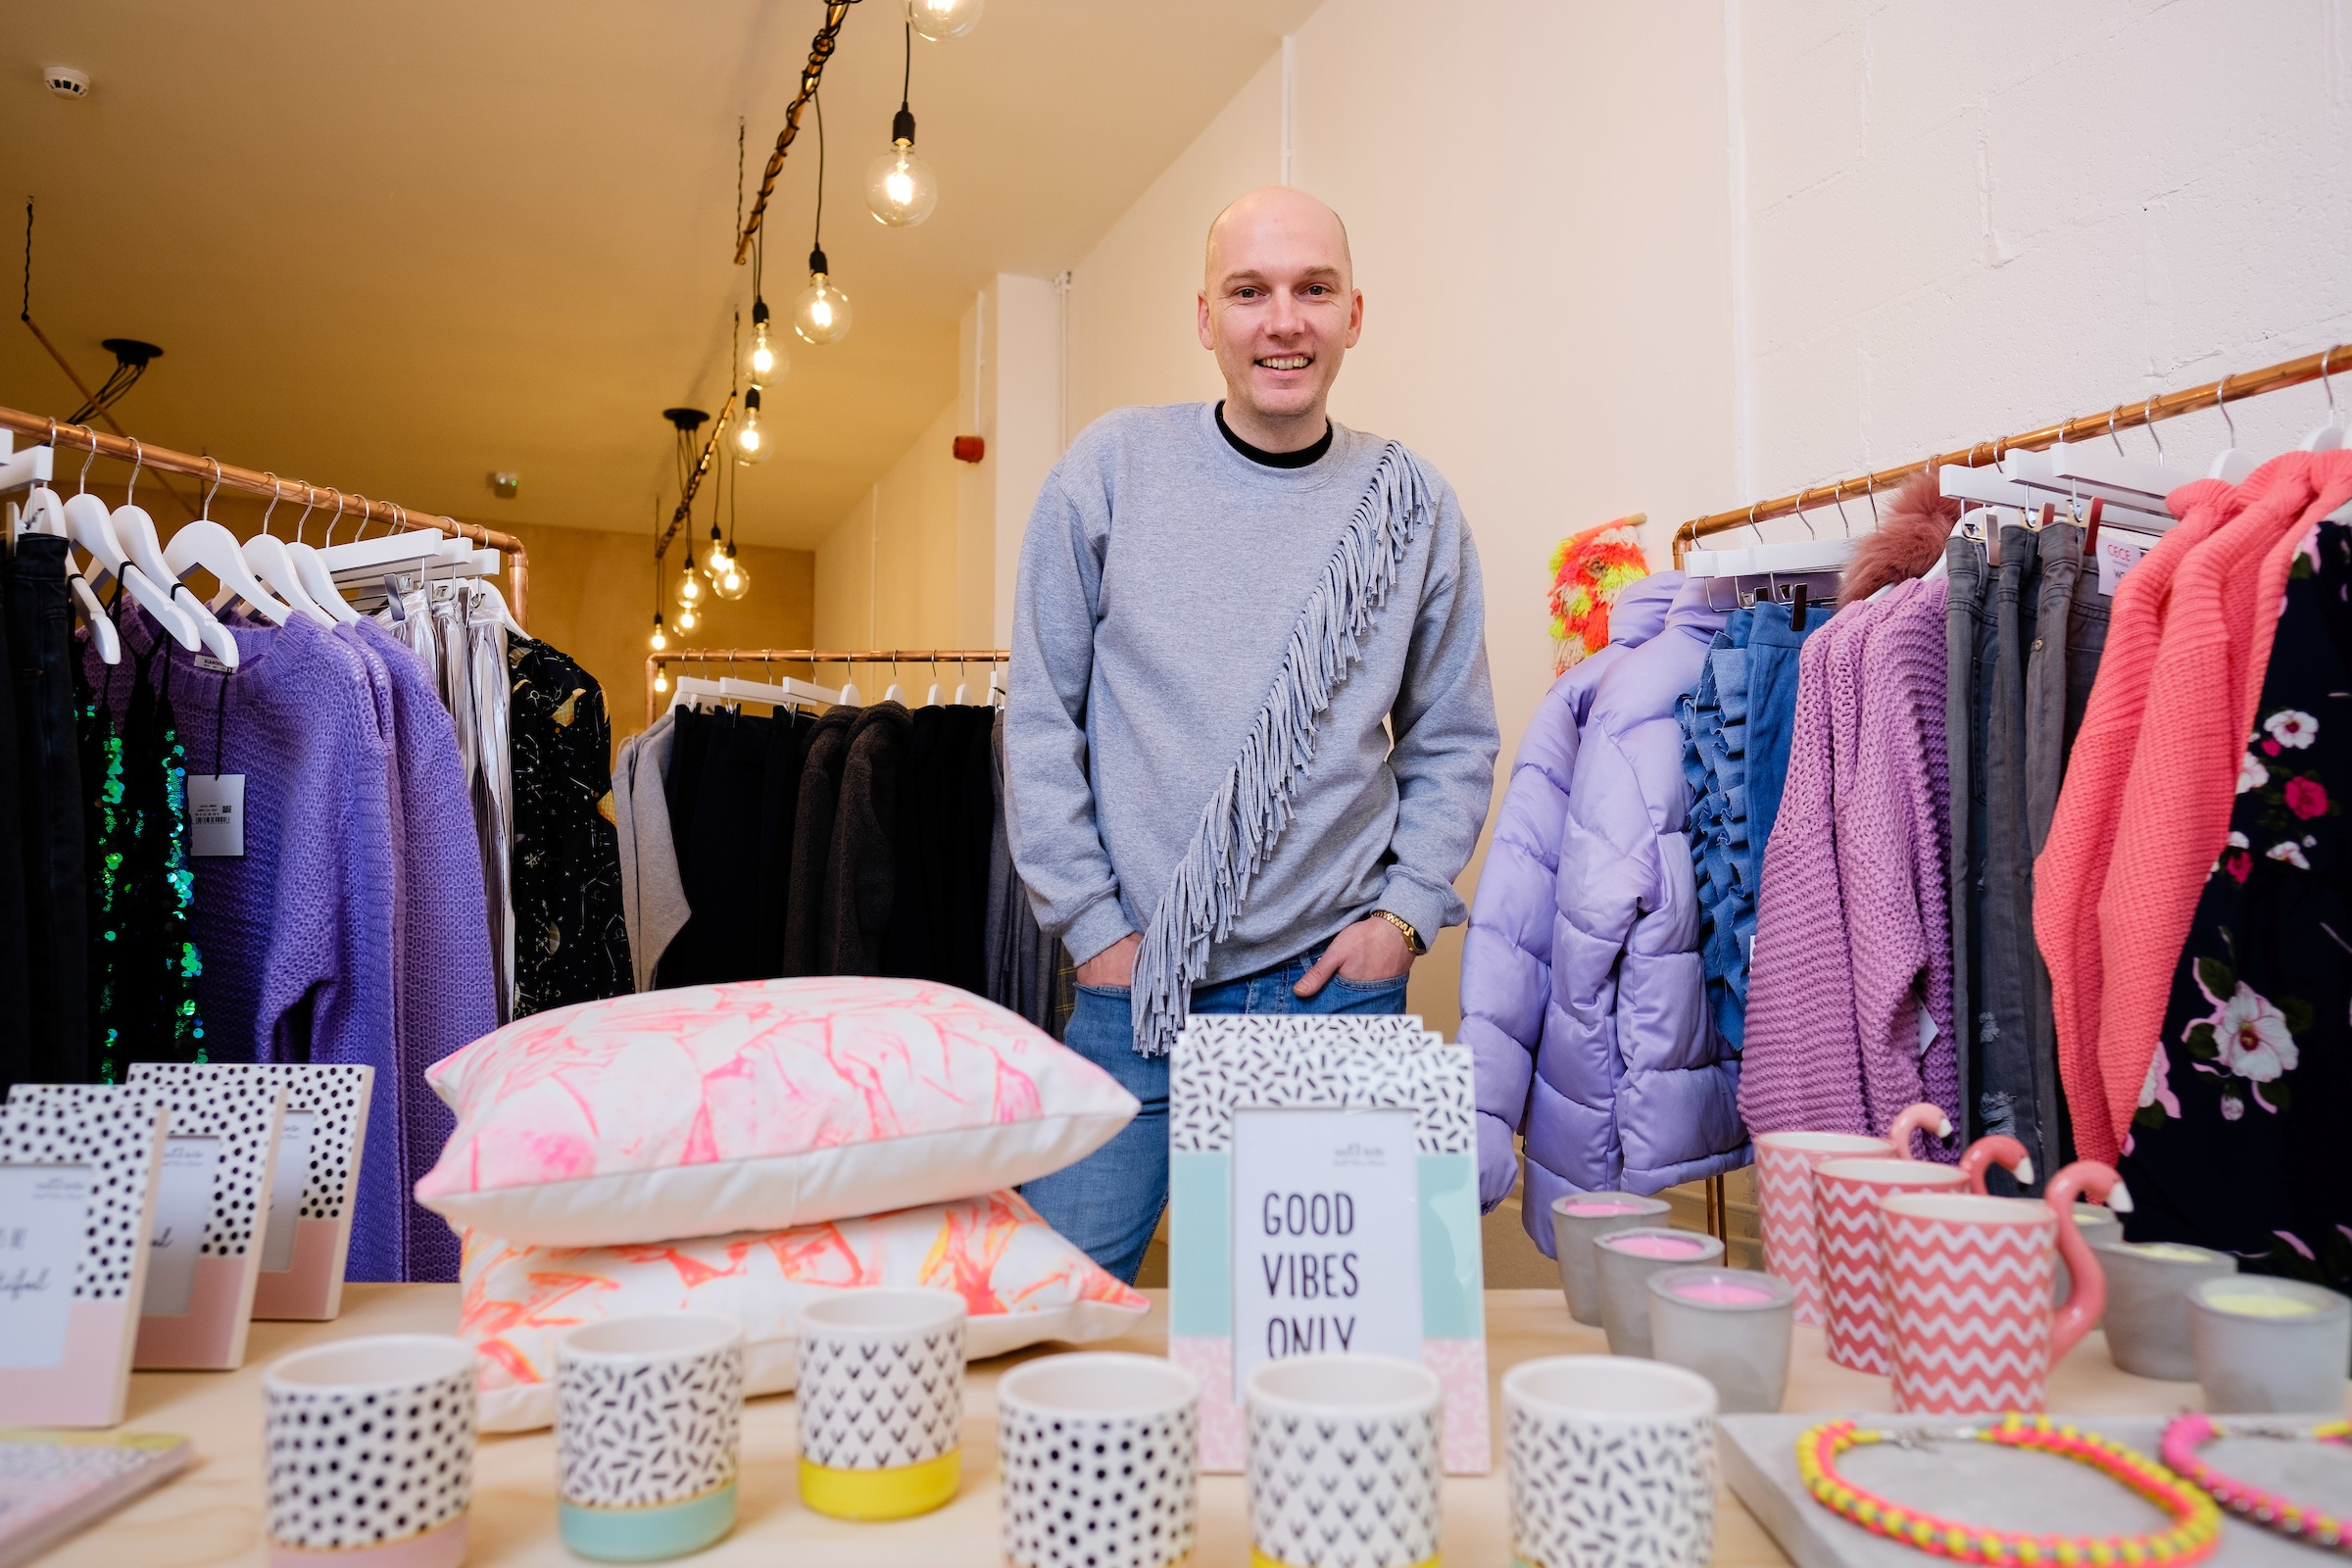 Shaun Barker-Newton in his new contemporary lifestyle store 19point4 in Hull's thriving Fruit Market district.